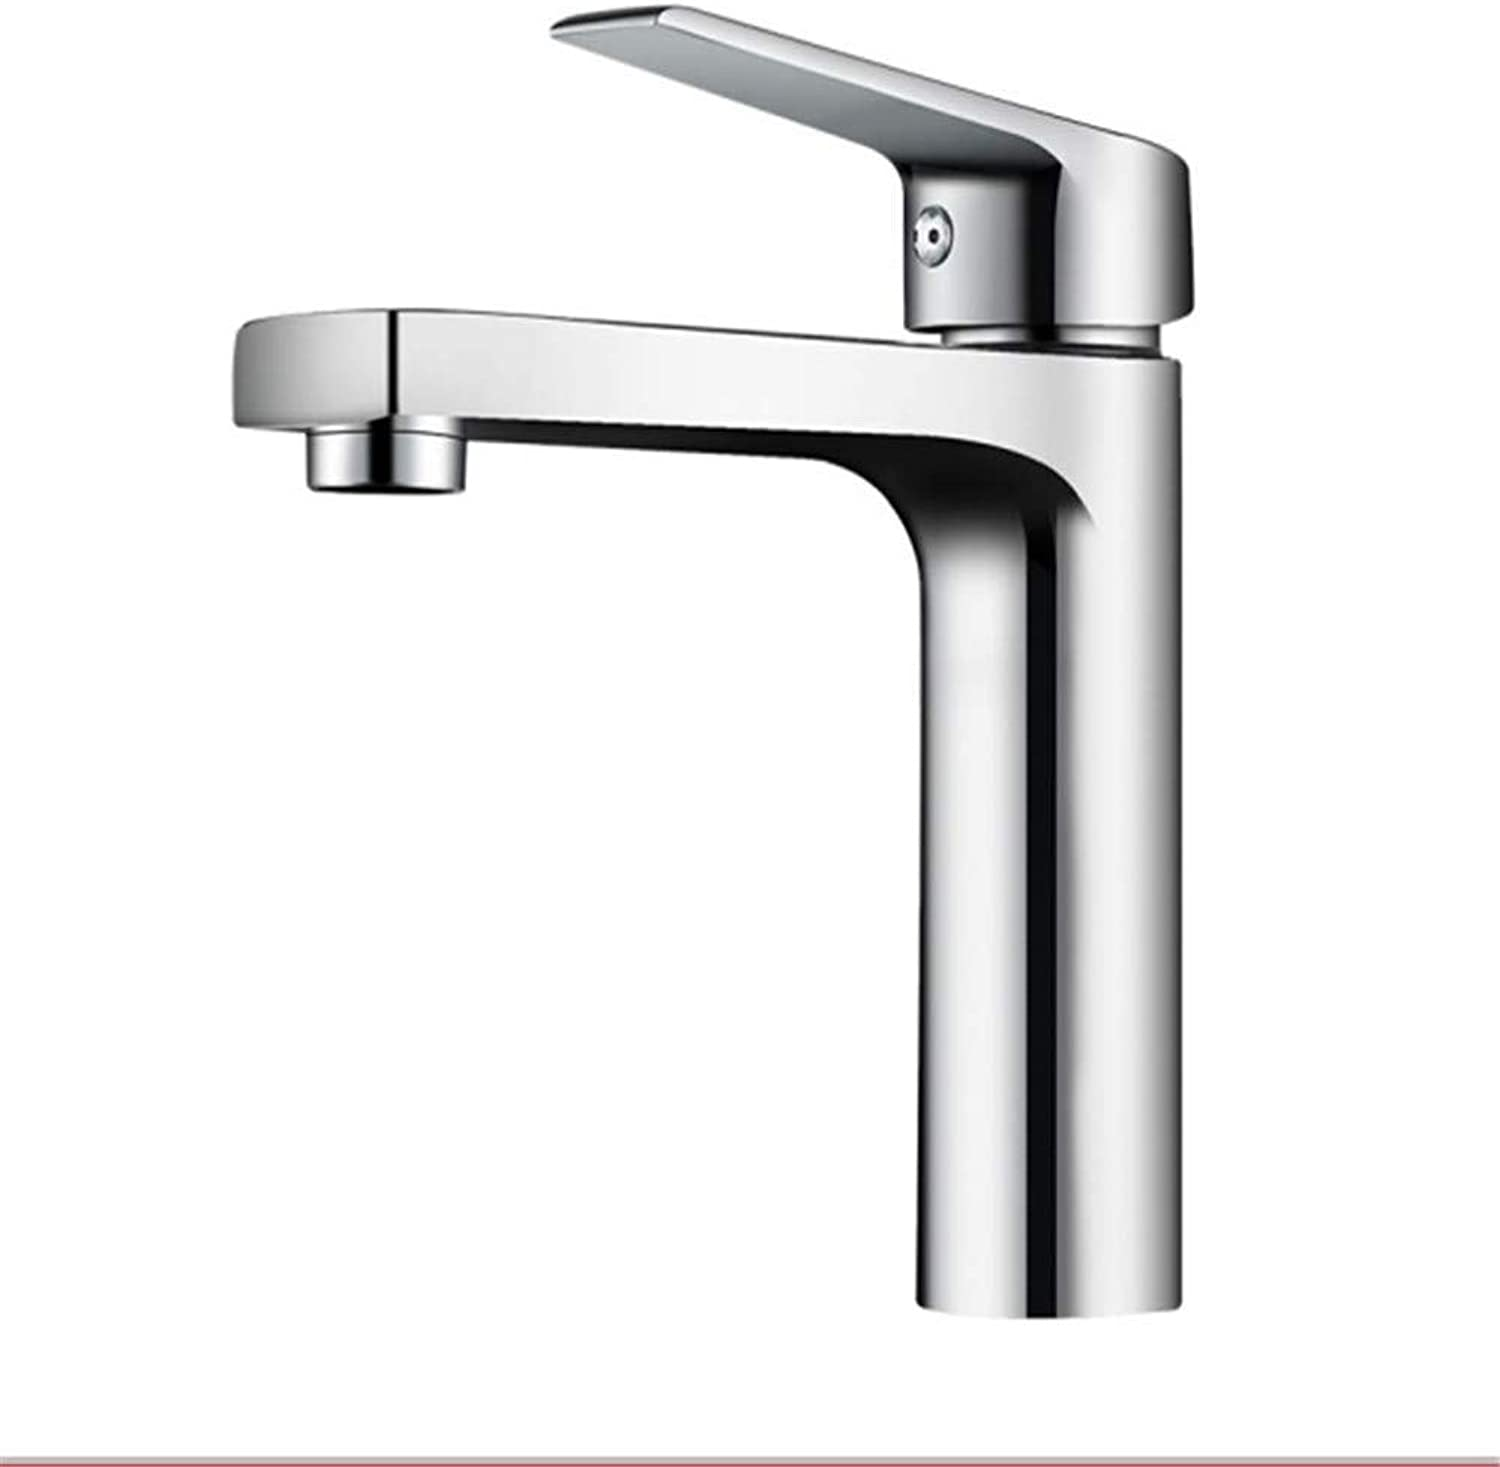 Water Tapdrinking Designer Archbasin Faucet Copper 360 Degree redation Hot and Cold Above Counter Basin Faucet